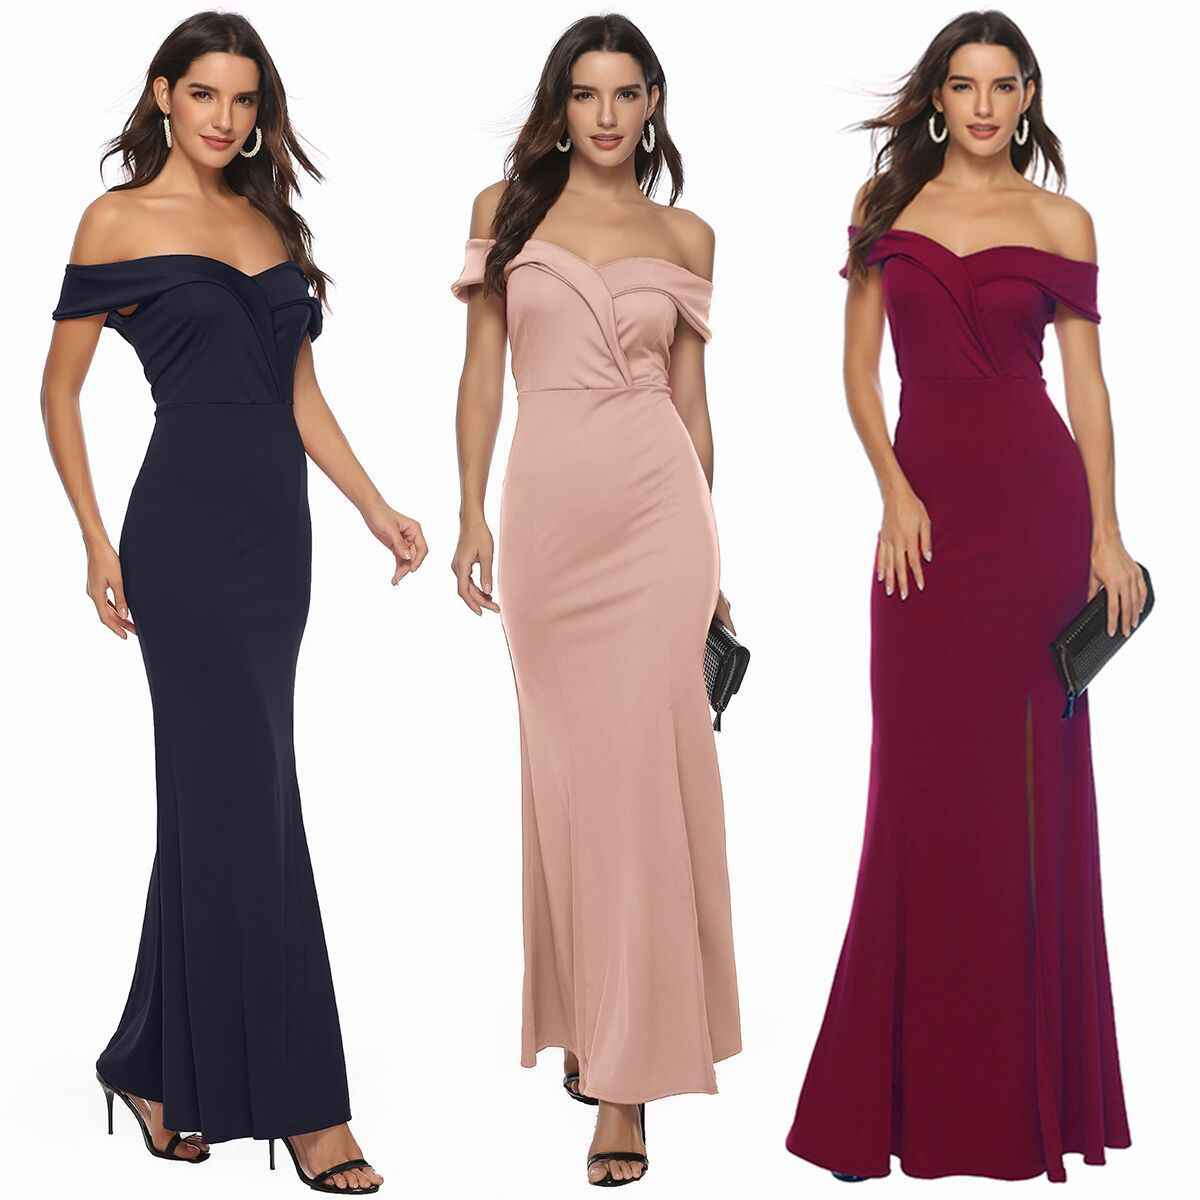 Women Off Shoulder ladies Dresses Casual Long Maxi Evening Party Beach sexy Dress Women Solid V-neck elegant Costume vestidos